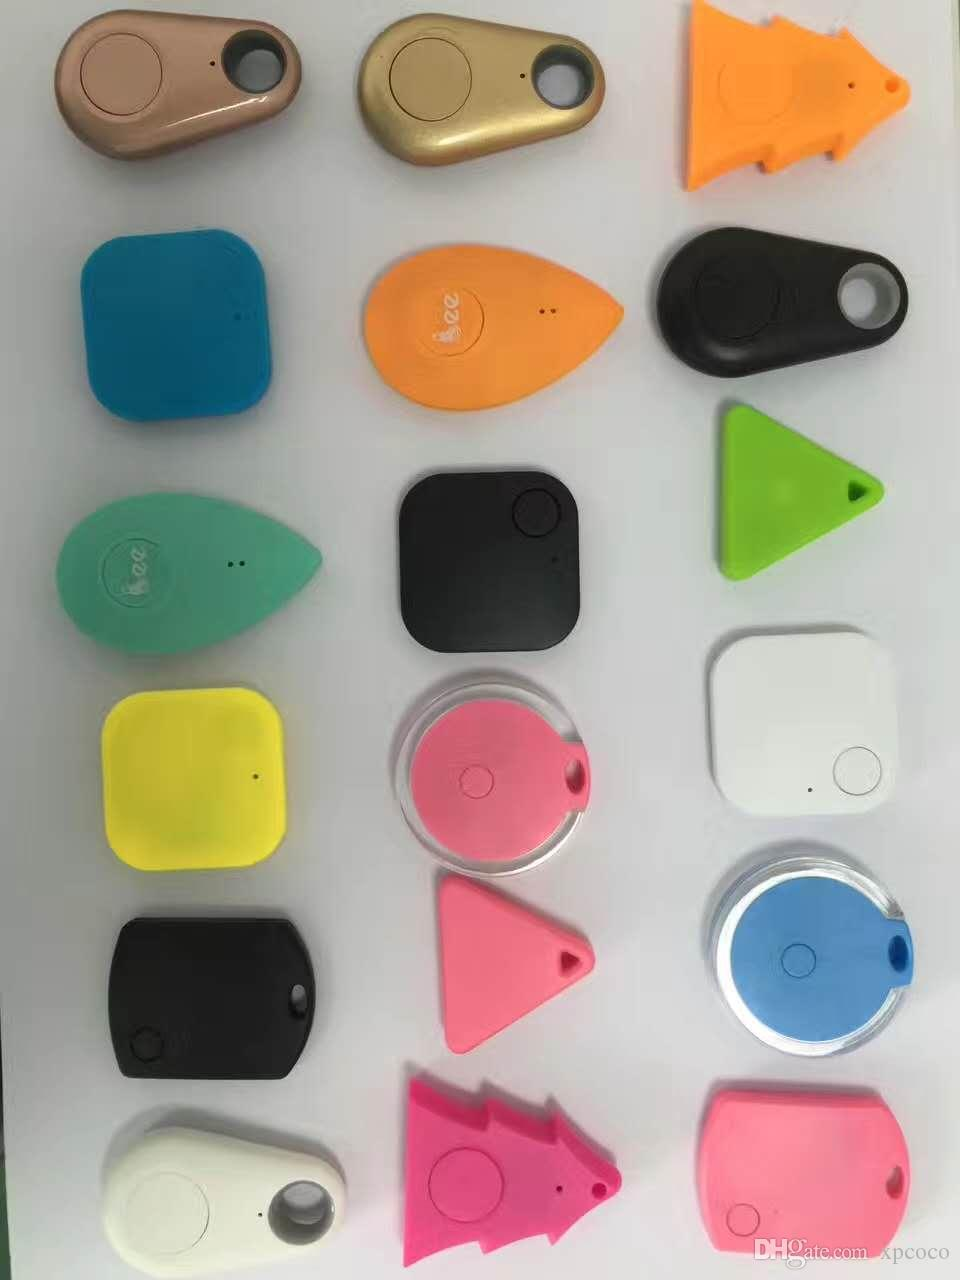 5 colores nuevos Popular Anti Loss Bluetooth Devices Bluetooth 4.0 Tracker Key Finder personal tracker Equipaje tracker manuafacturer